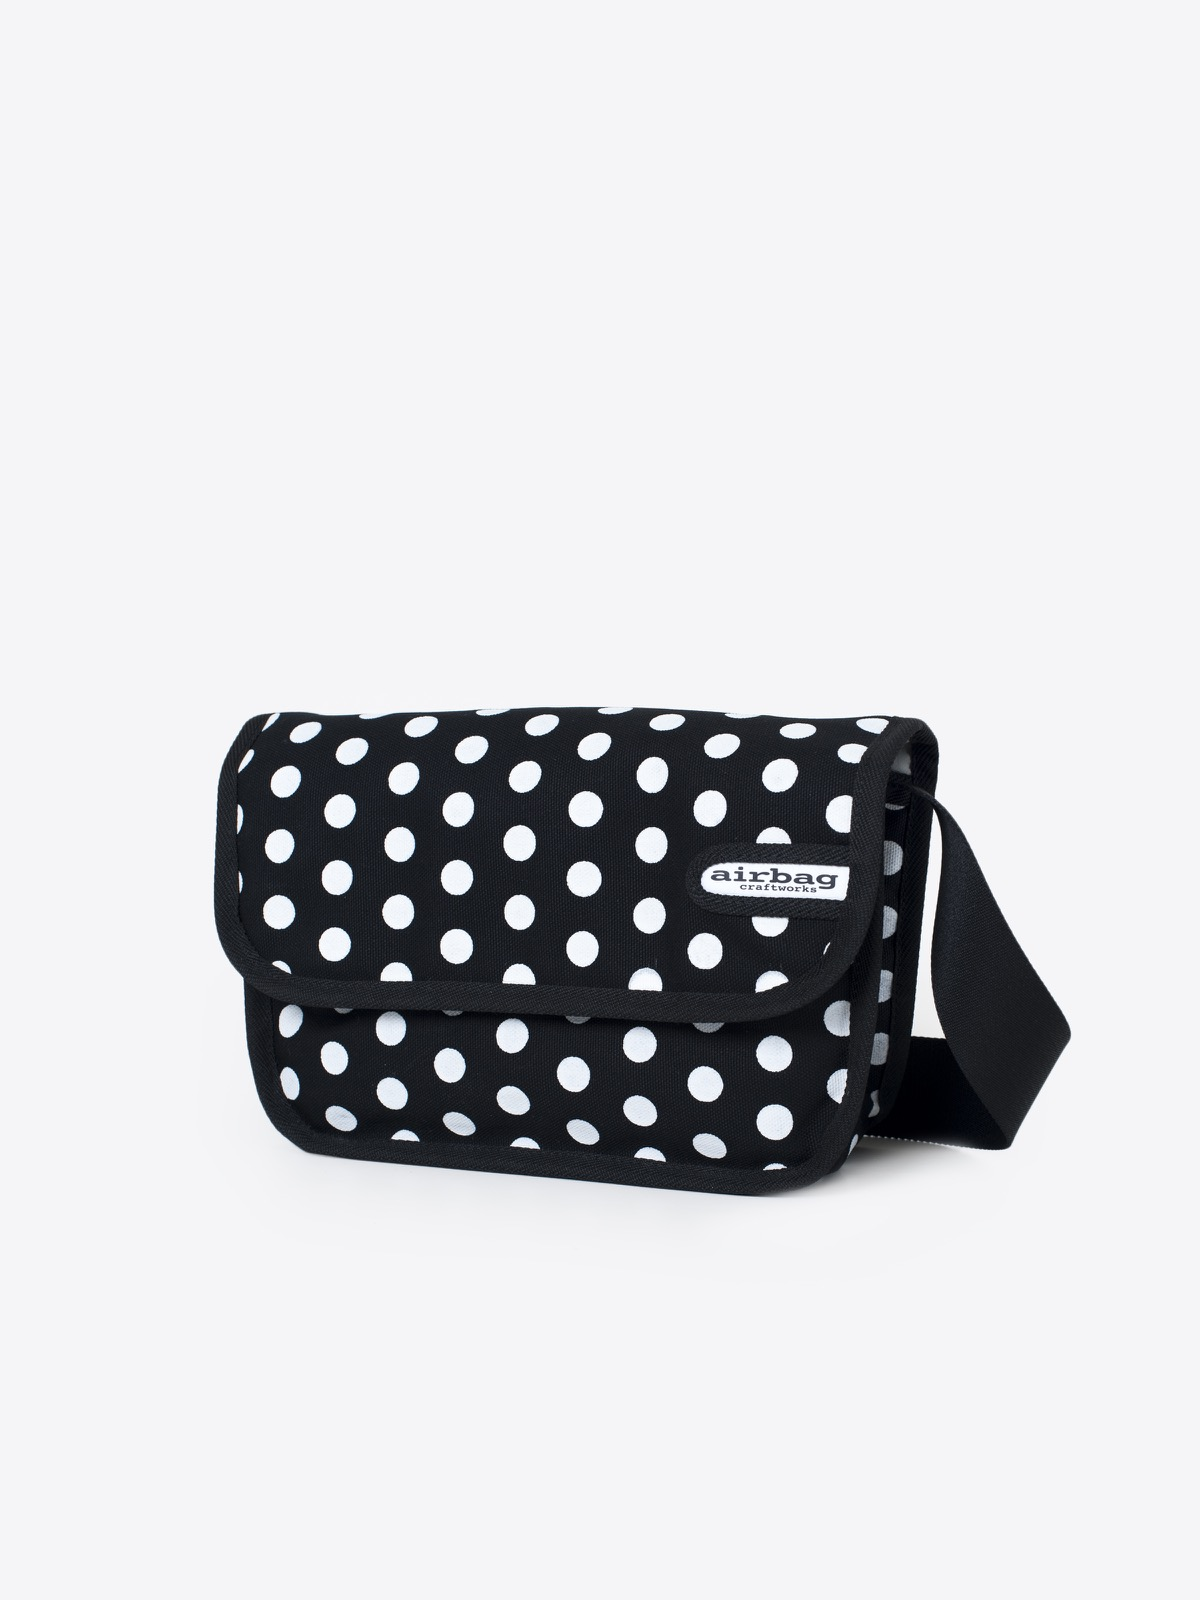 airbag craftworks white dots